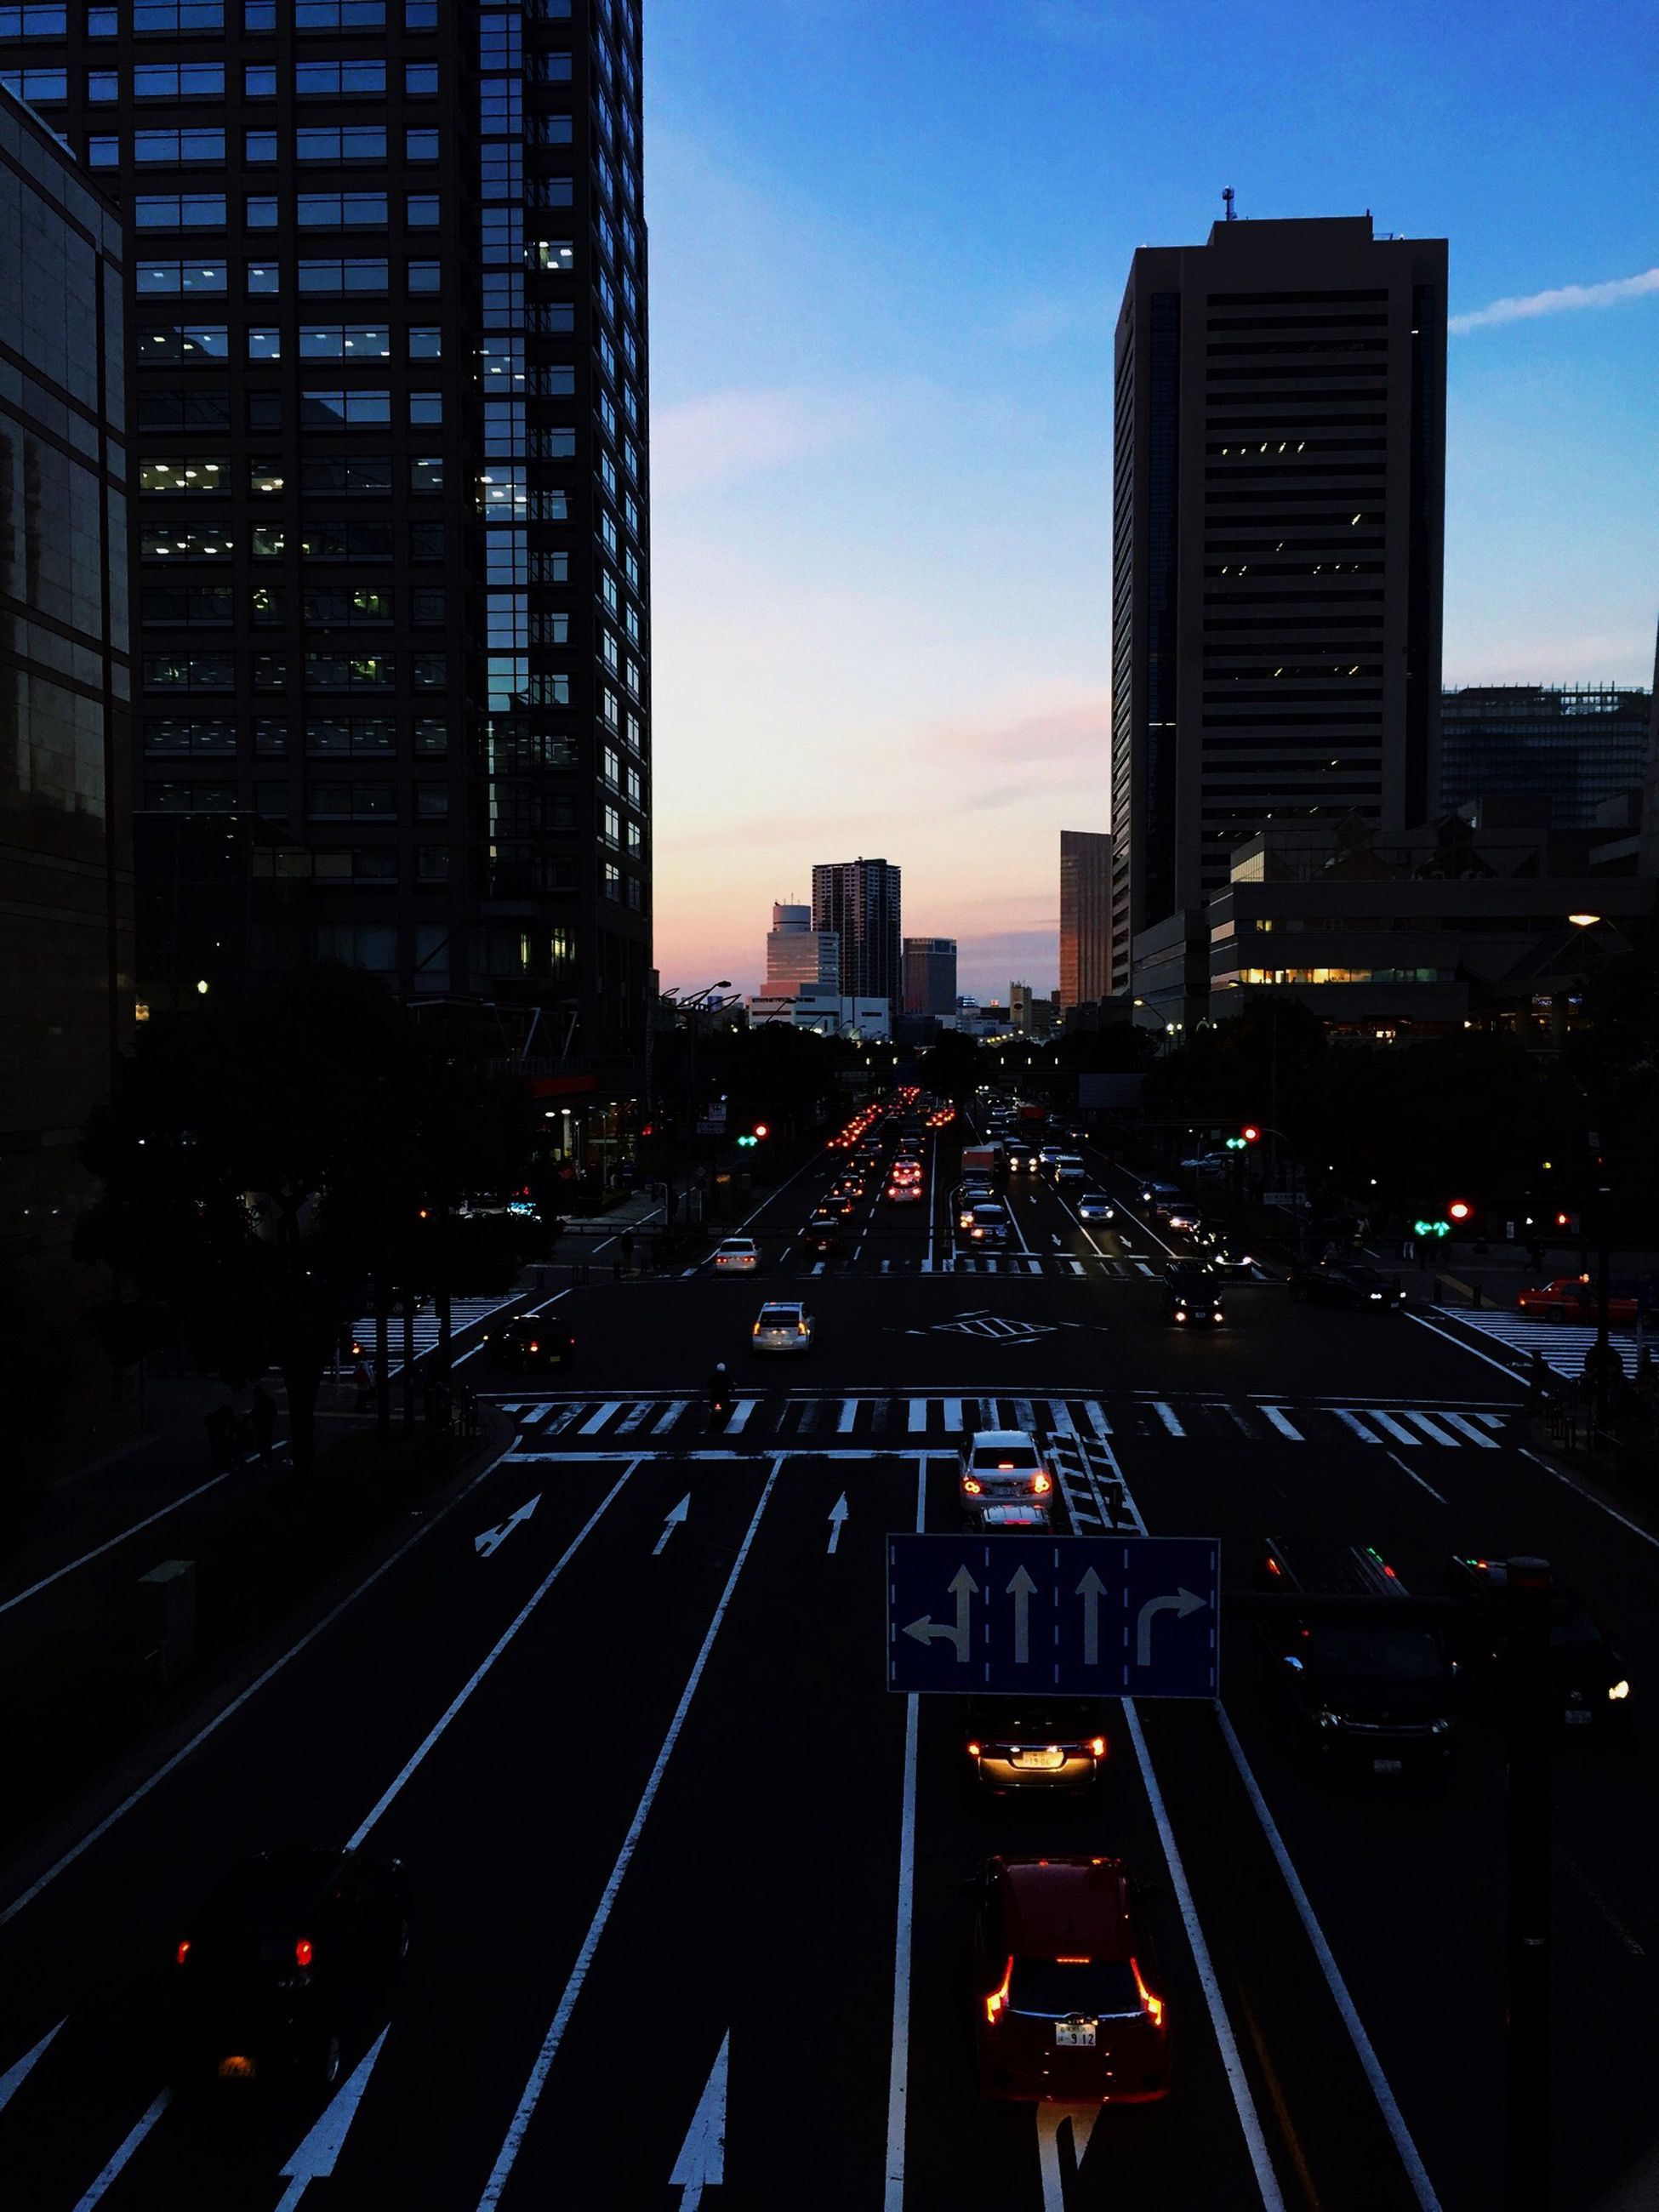 city, building exterior, architecture, built structure, transportation, skyscraper, office building, illuminated, tall - high, modern, railroad track, sky, city life, tower, cityscape, sunset, dusk, high angle view, road, traffic